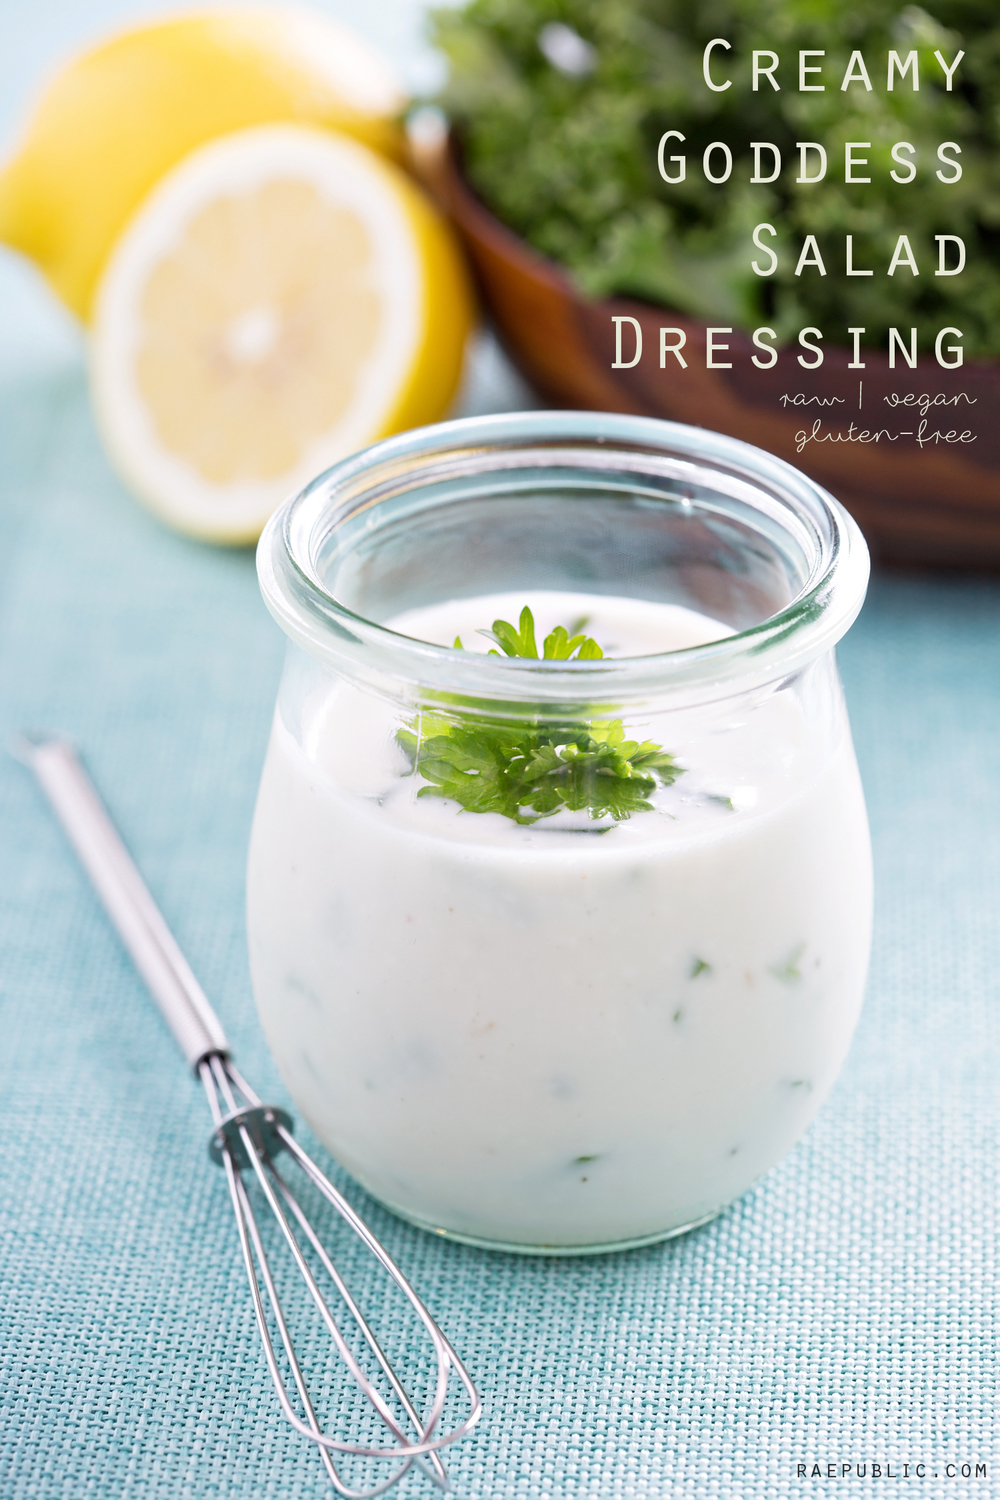 Raepublic's easy to make creamy goddess salad dressing that is naturally raw, vegan and gluten-free. It's almost sugar-free but it has a dash of maple syrup added to it.